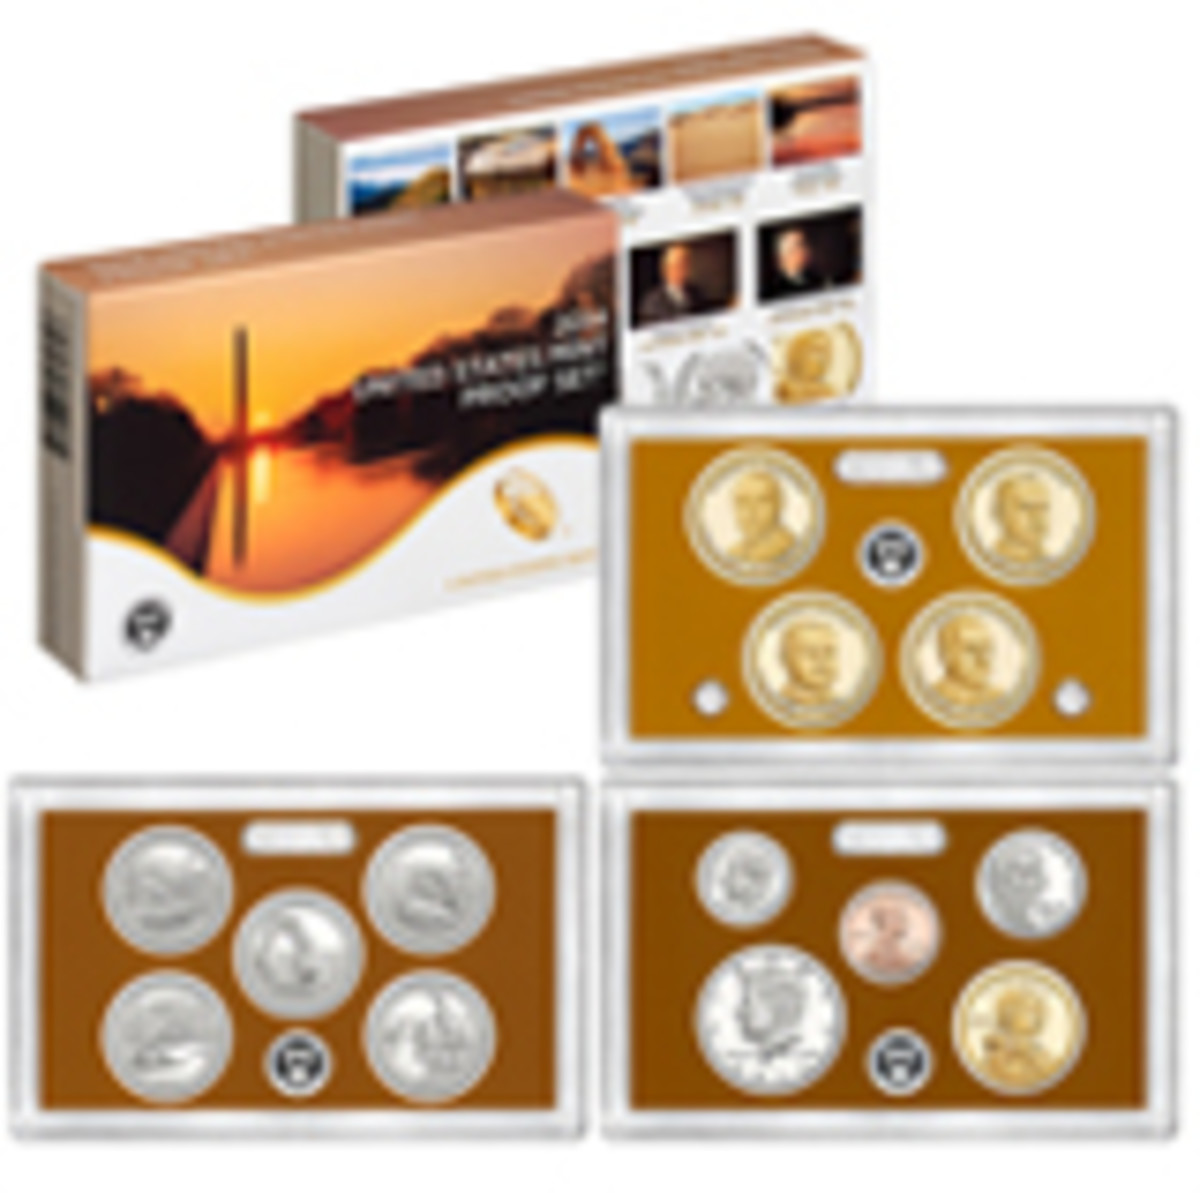 The U.S. Mint issues 14-coin clad and silver proof sets containing proofs of all the circulating coins made that year